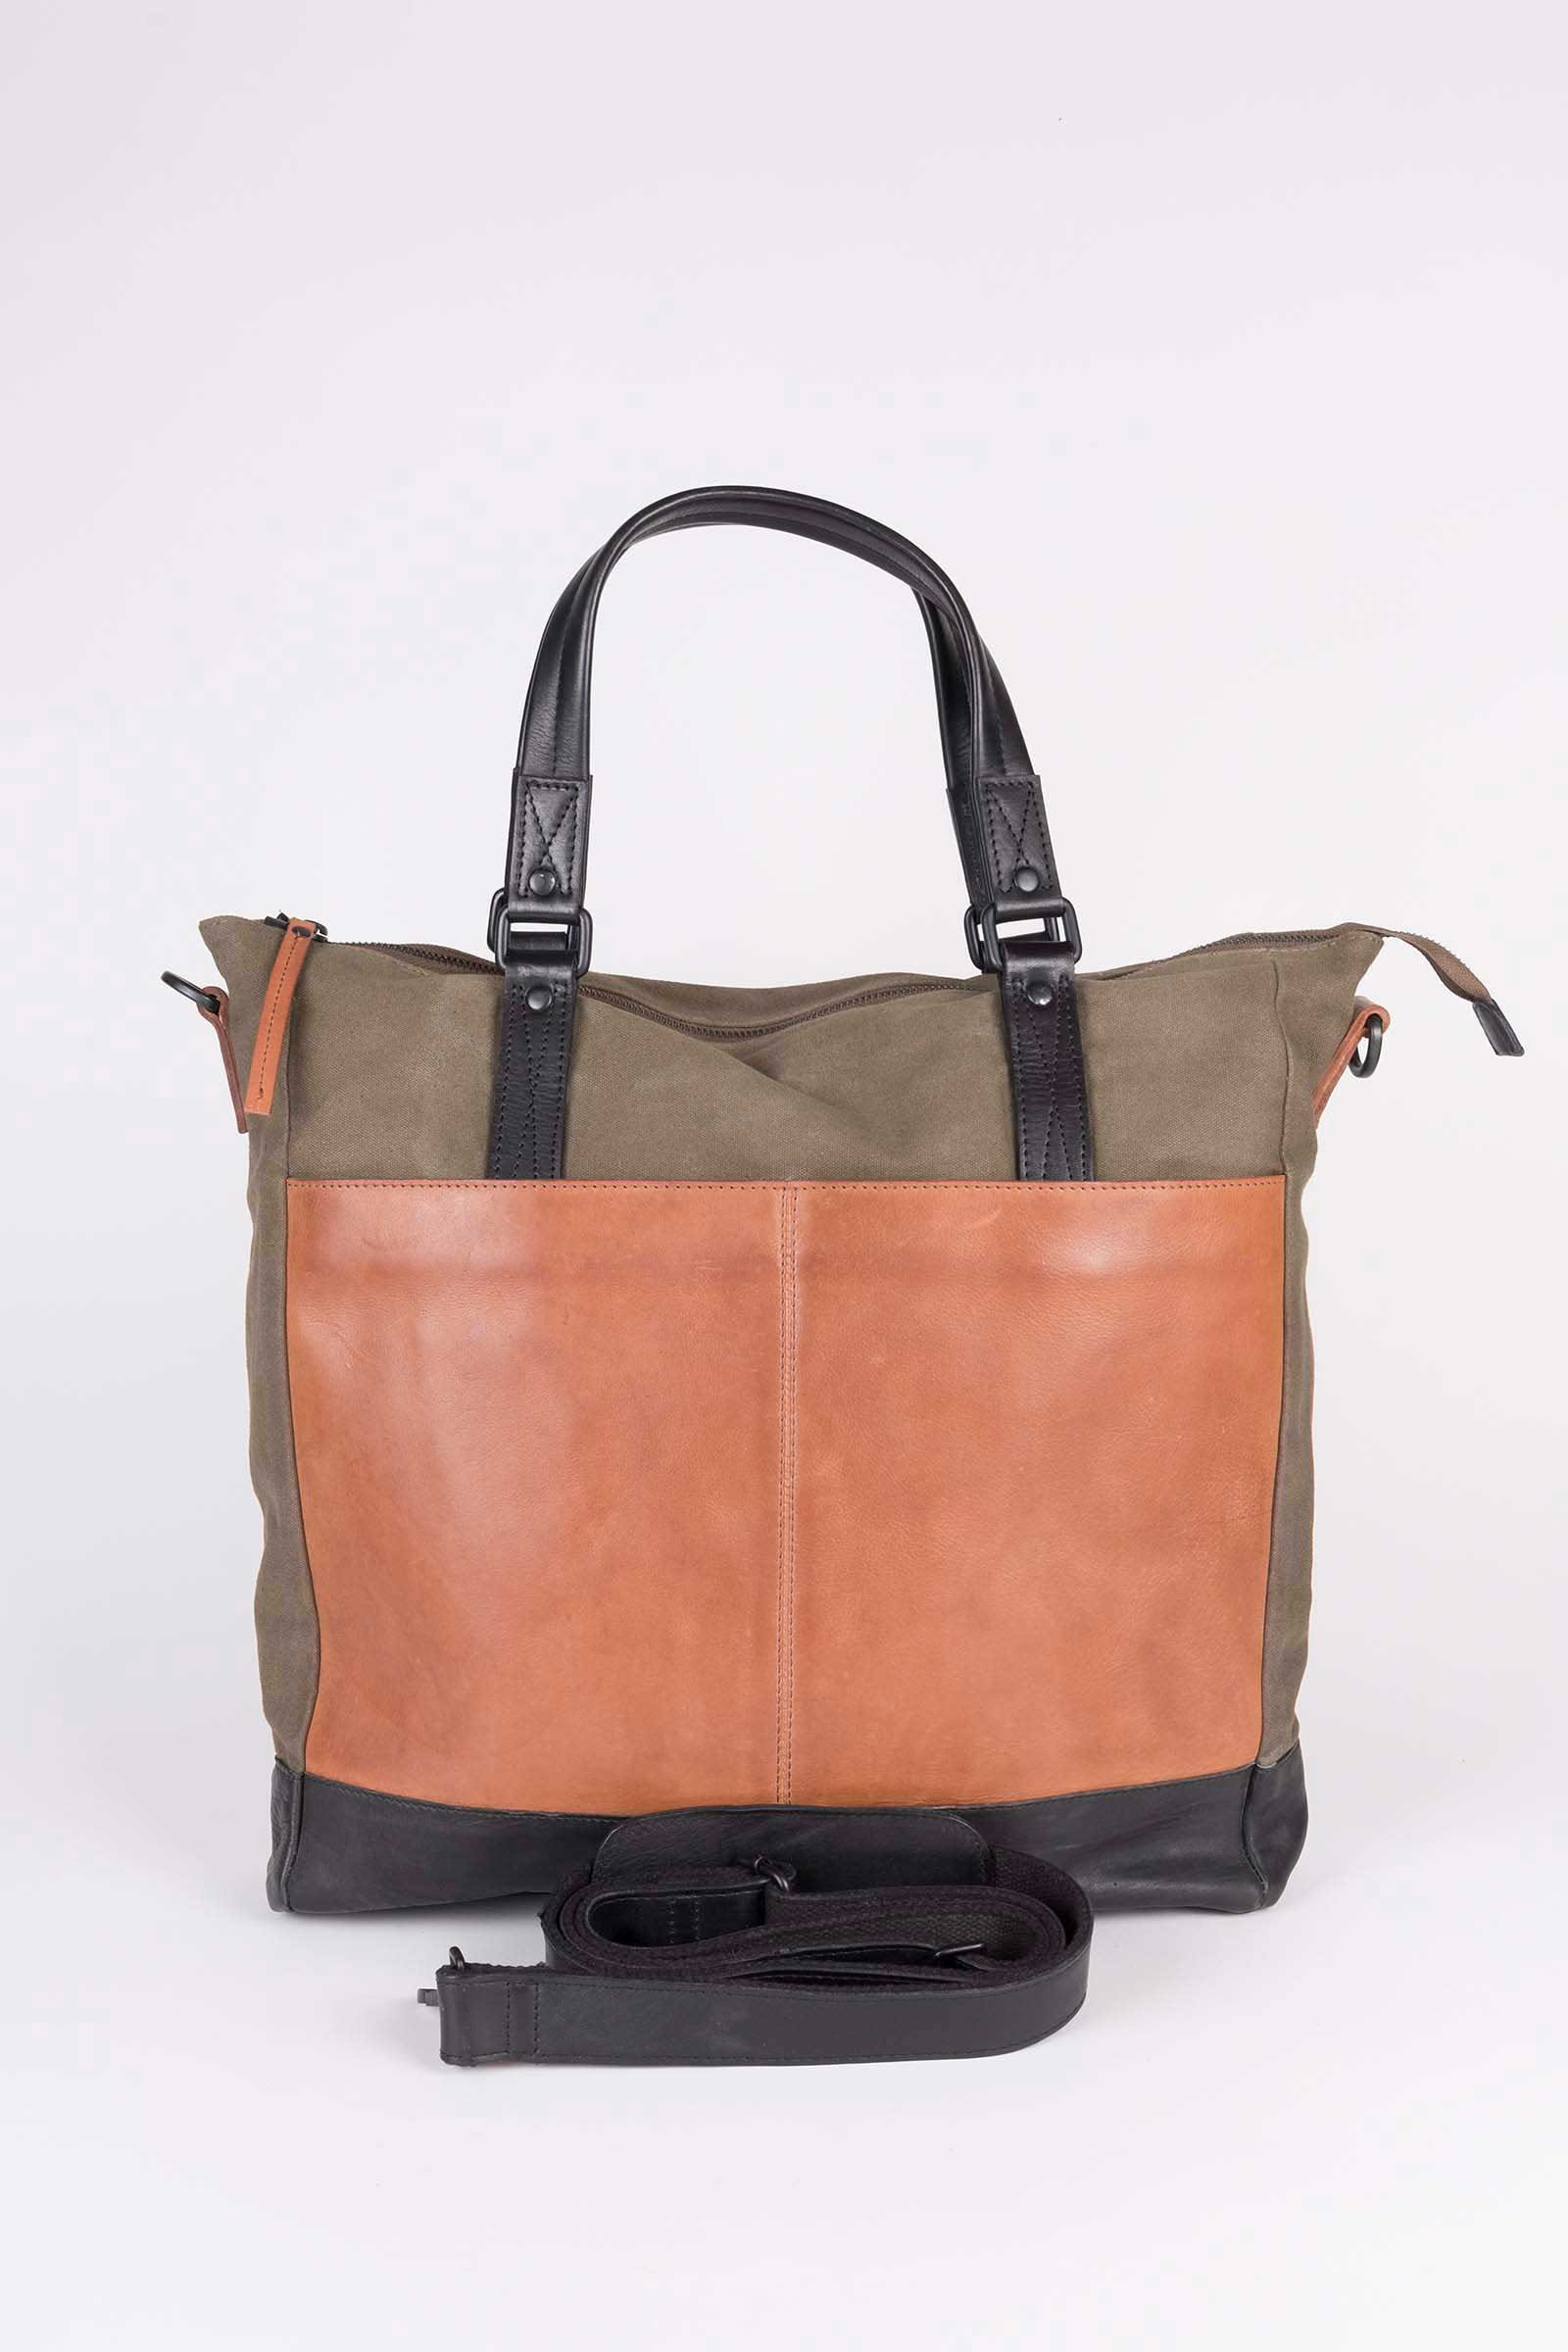 Legend Bicolor Bag Eduardo & Elisa Rivera - Legend